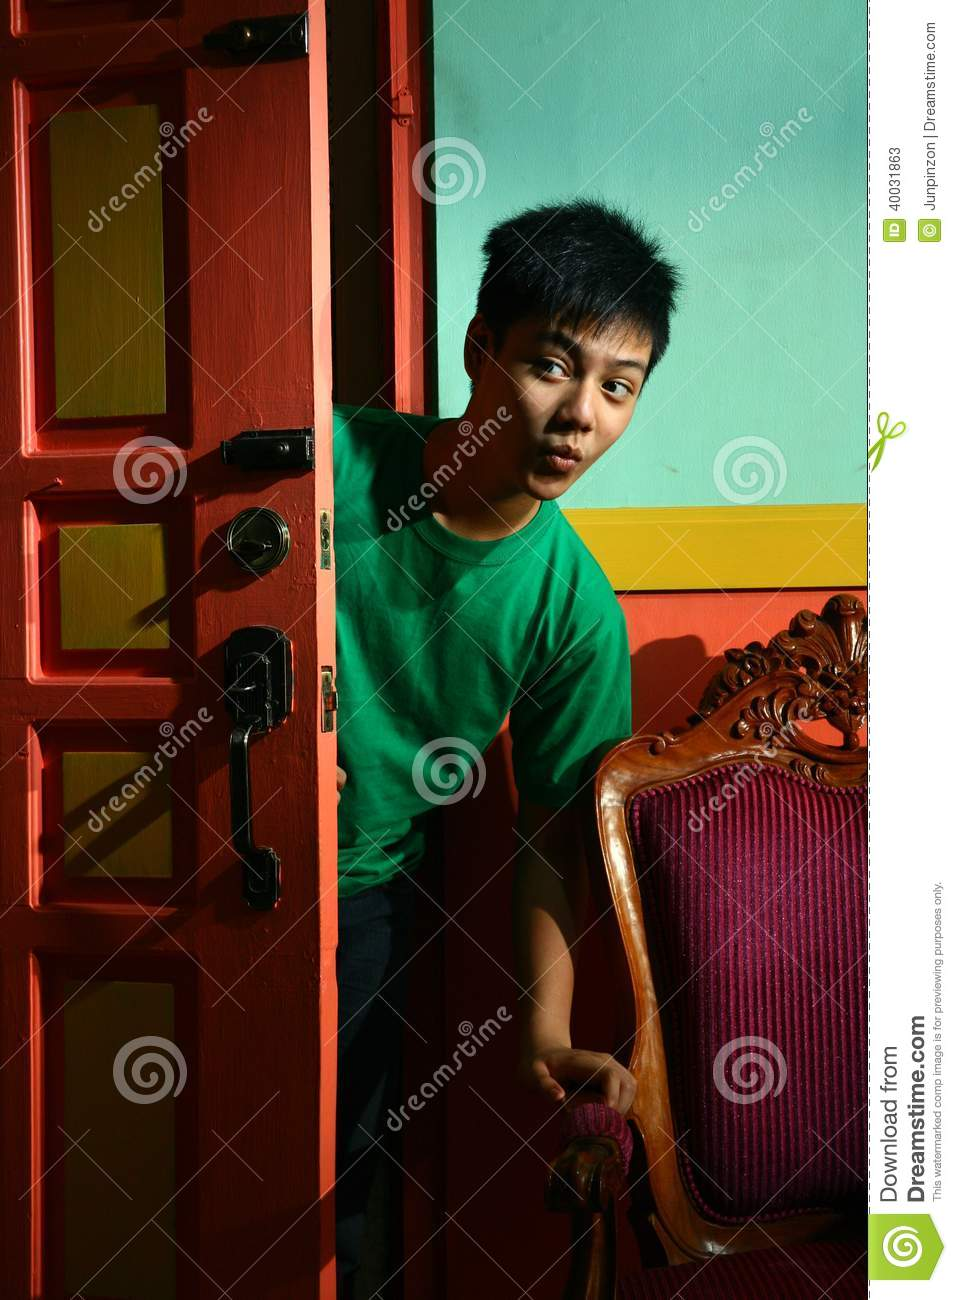 Young asian teen peeking and sneaking in into a living room